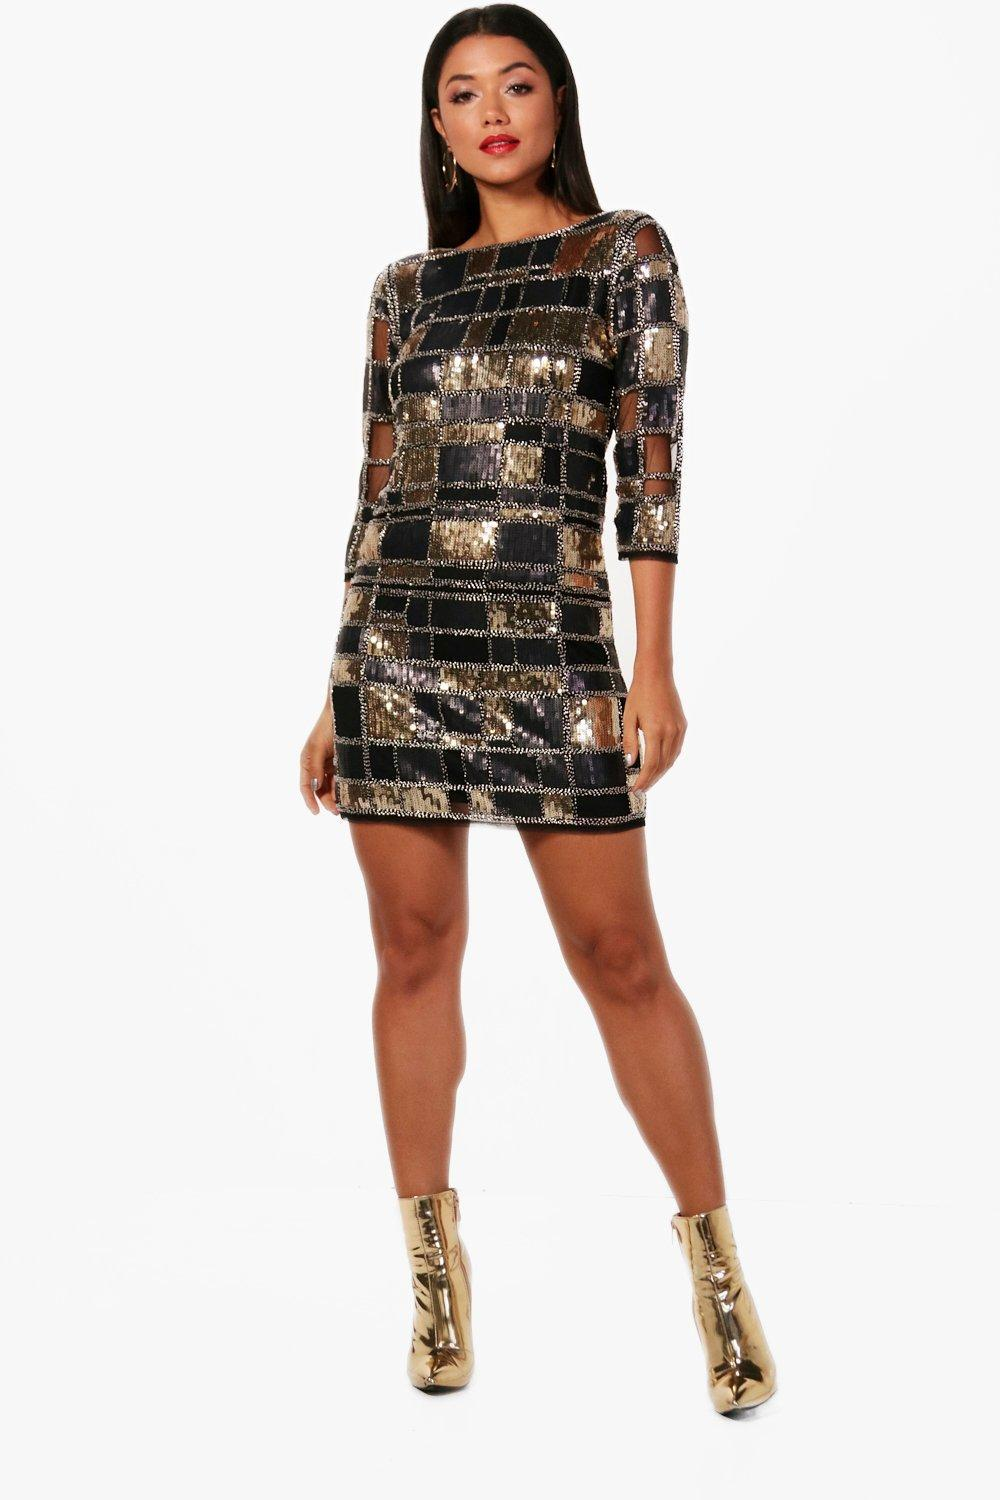 9d965f8f Lyst - Boohoo Boutique Sequin 3/4 Sleeve Bodycon Dress in Black